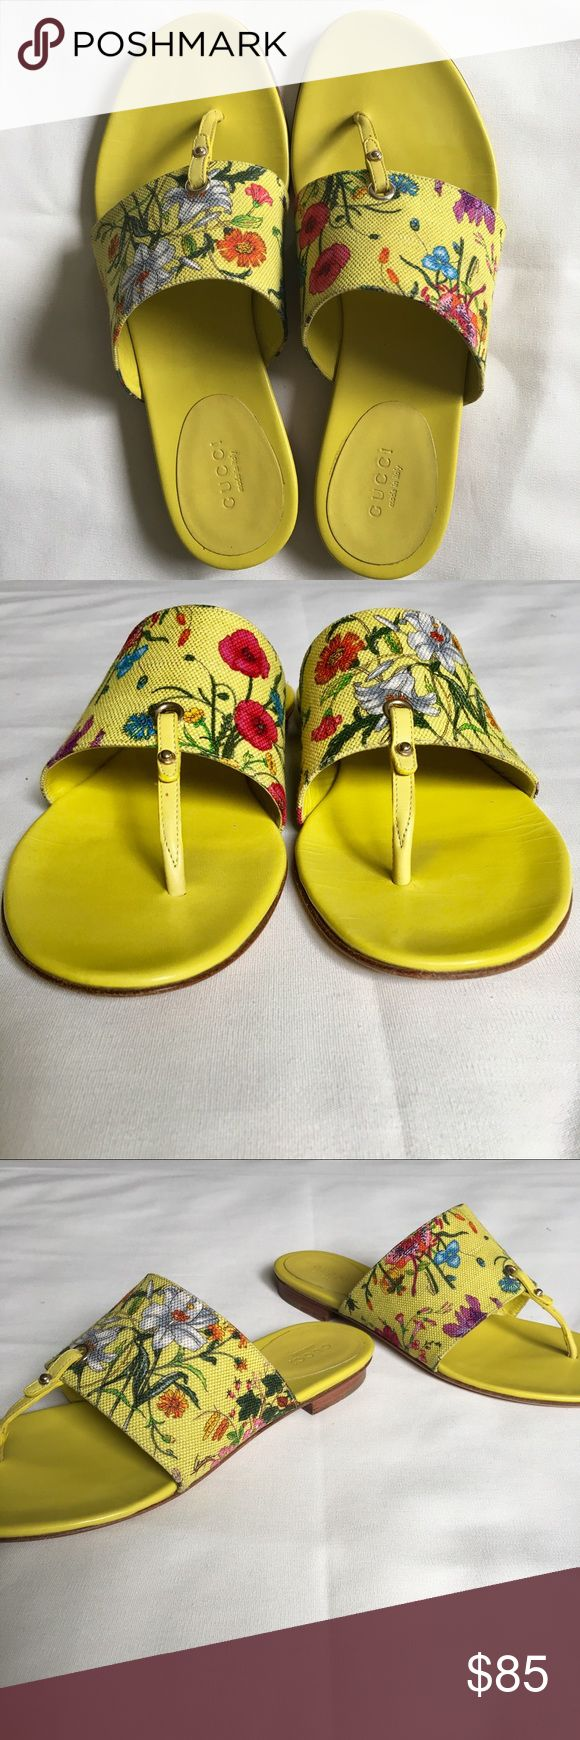 Gucci sandal In fairly good condition. Numerous small creases on insole, mild wear at insole heels, and general wear at outsoles, one tiny spot on the strap, faint discoloration on edges of canvas, no other major blemishes. Size 8.5. Price is firm. Gucci Shoes Sandals